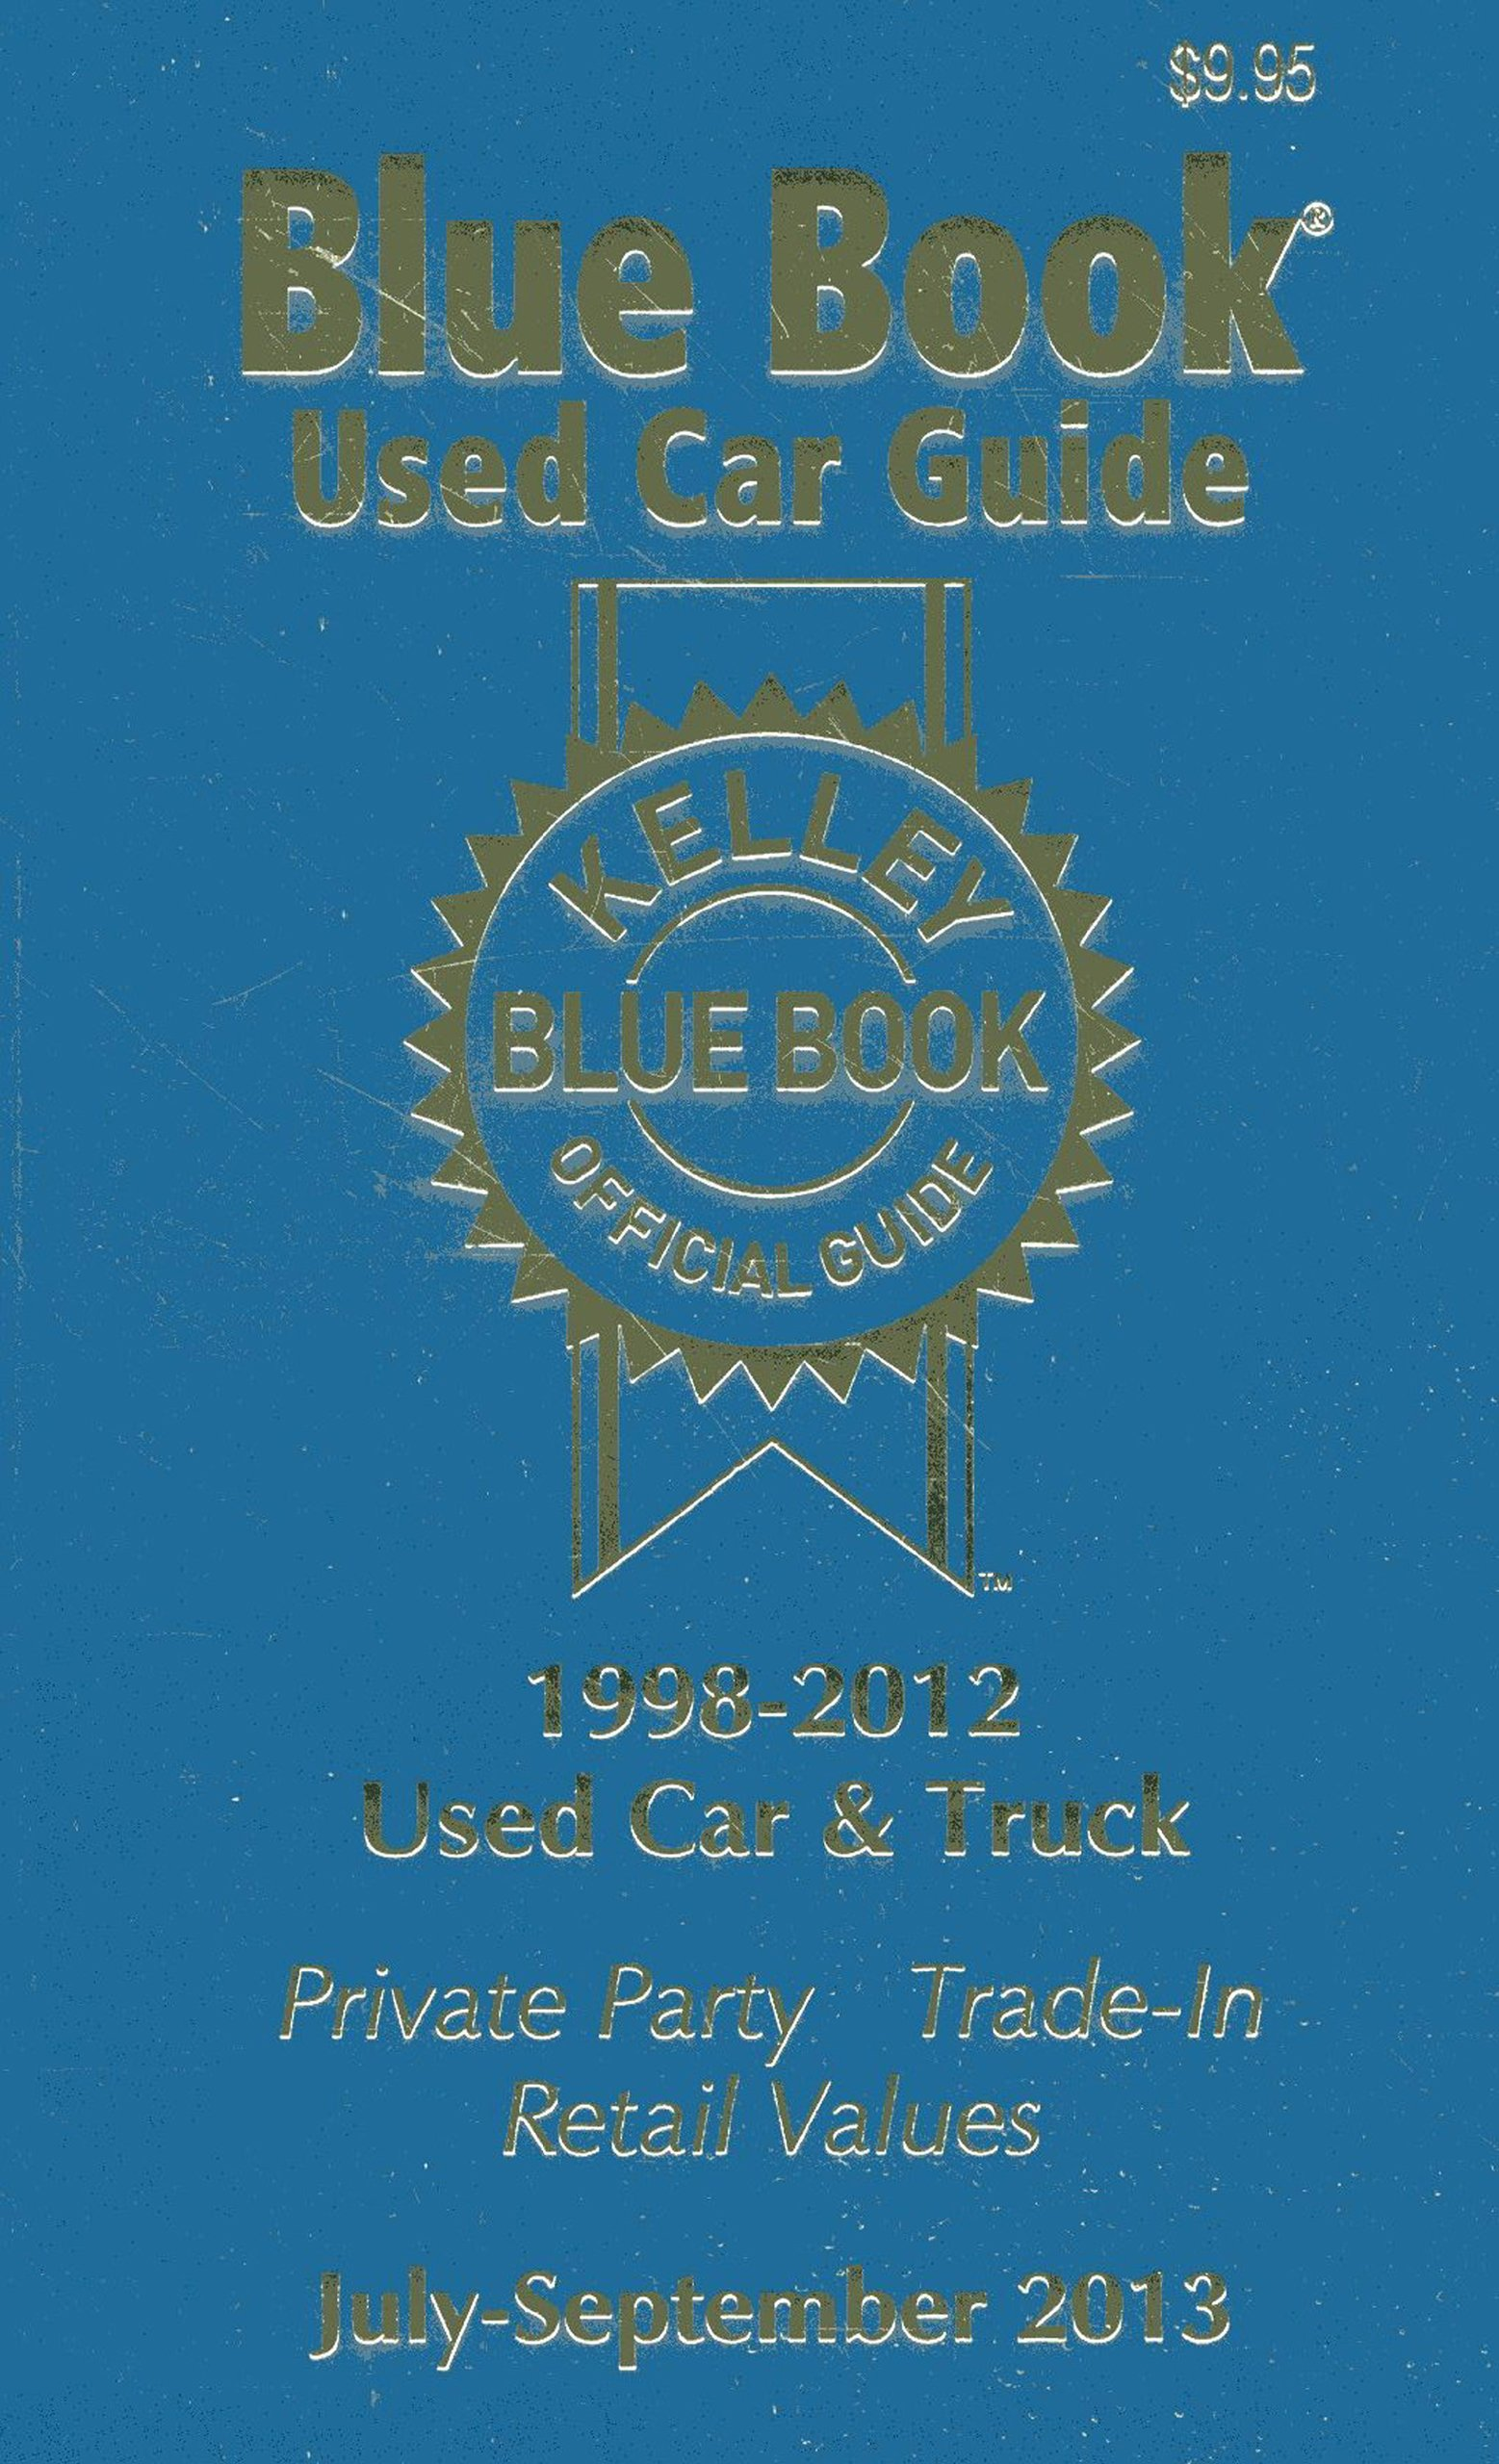 net conversions influences kelley blue book case Deloitte refers to one or more of deloitte touche tohmatsu limited, a uk private company limited by guarantee, and its network of member firms, each of which is a legally separate and independent entity.